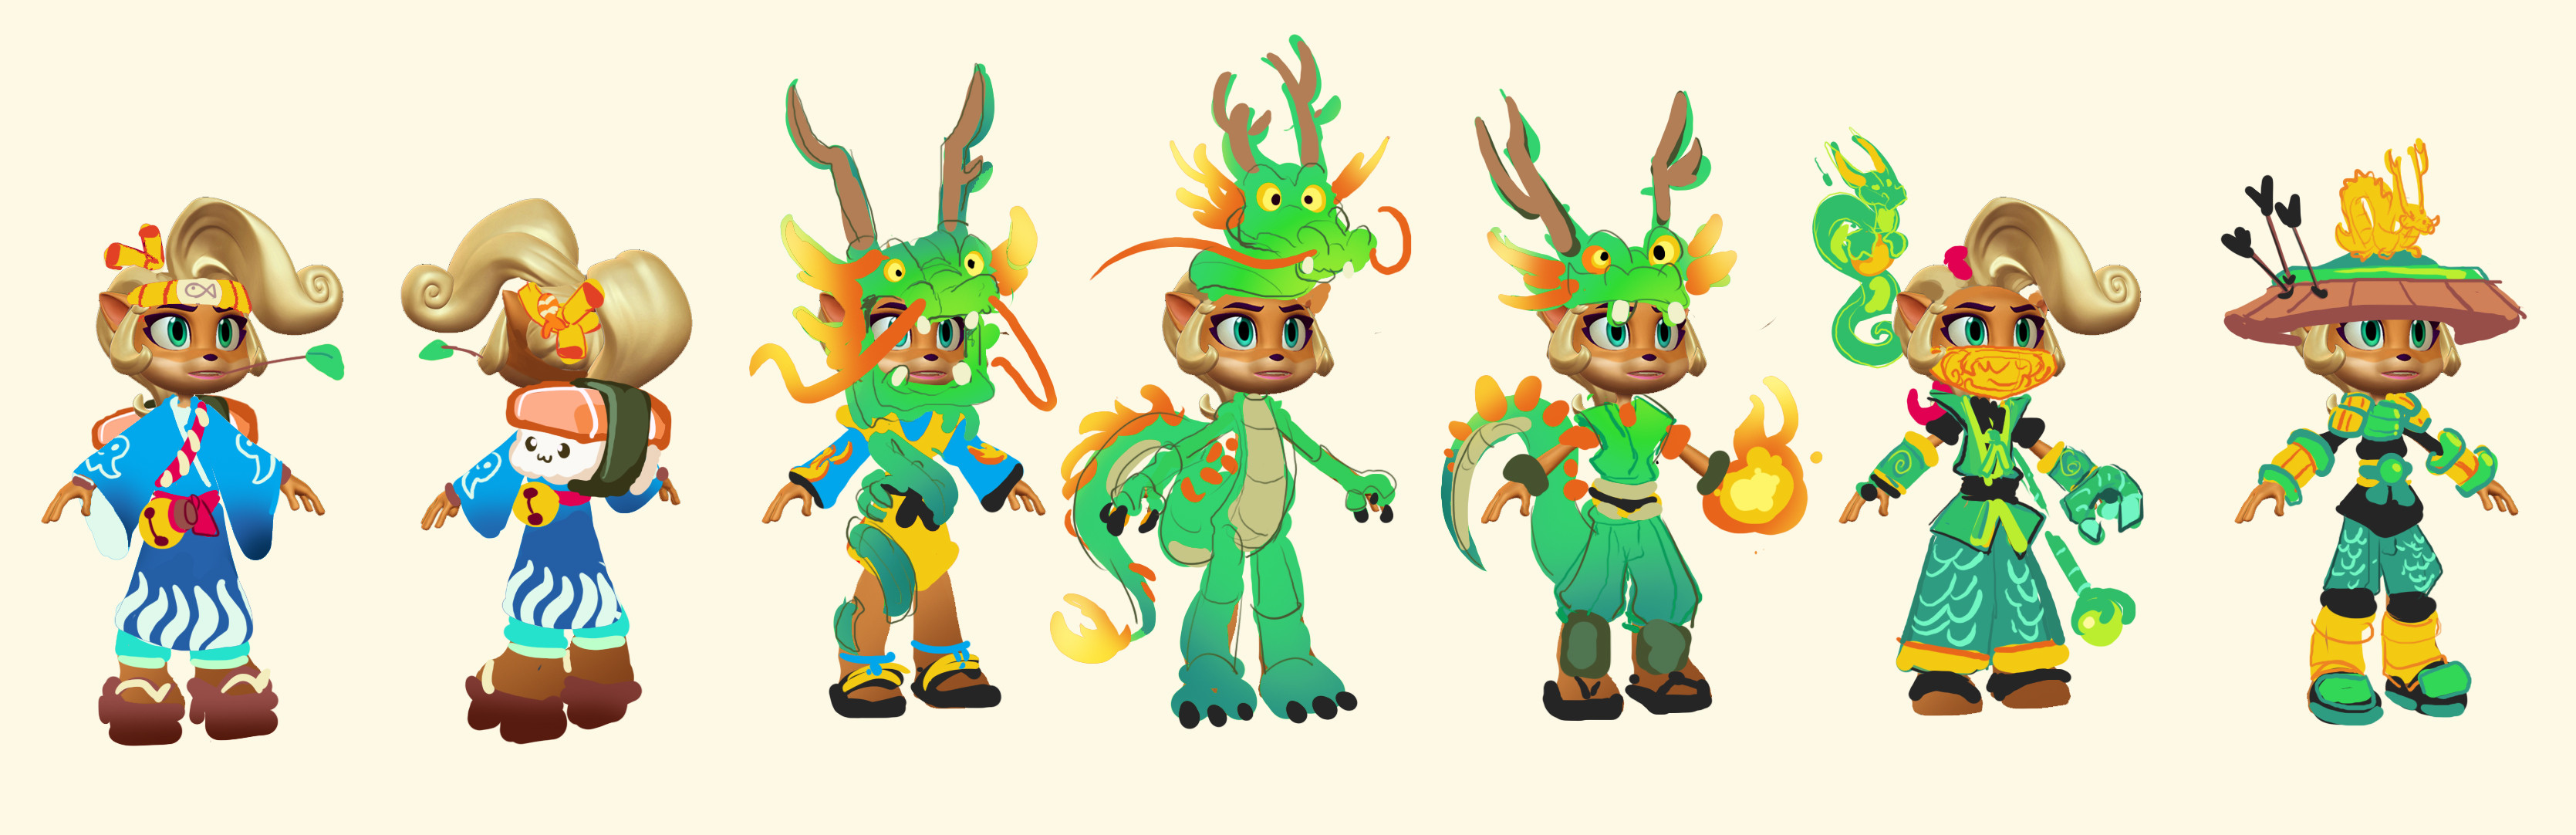 Early Coco ideation - Team wanted to go with something more fantasy based, so I tried a dragon theme that went from full animal to ninja style left to right.